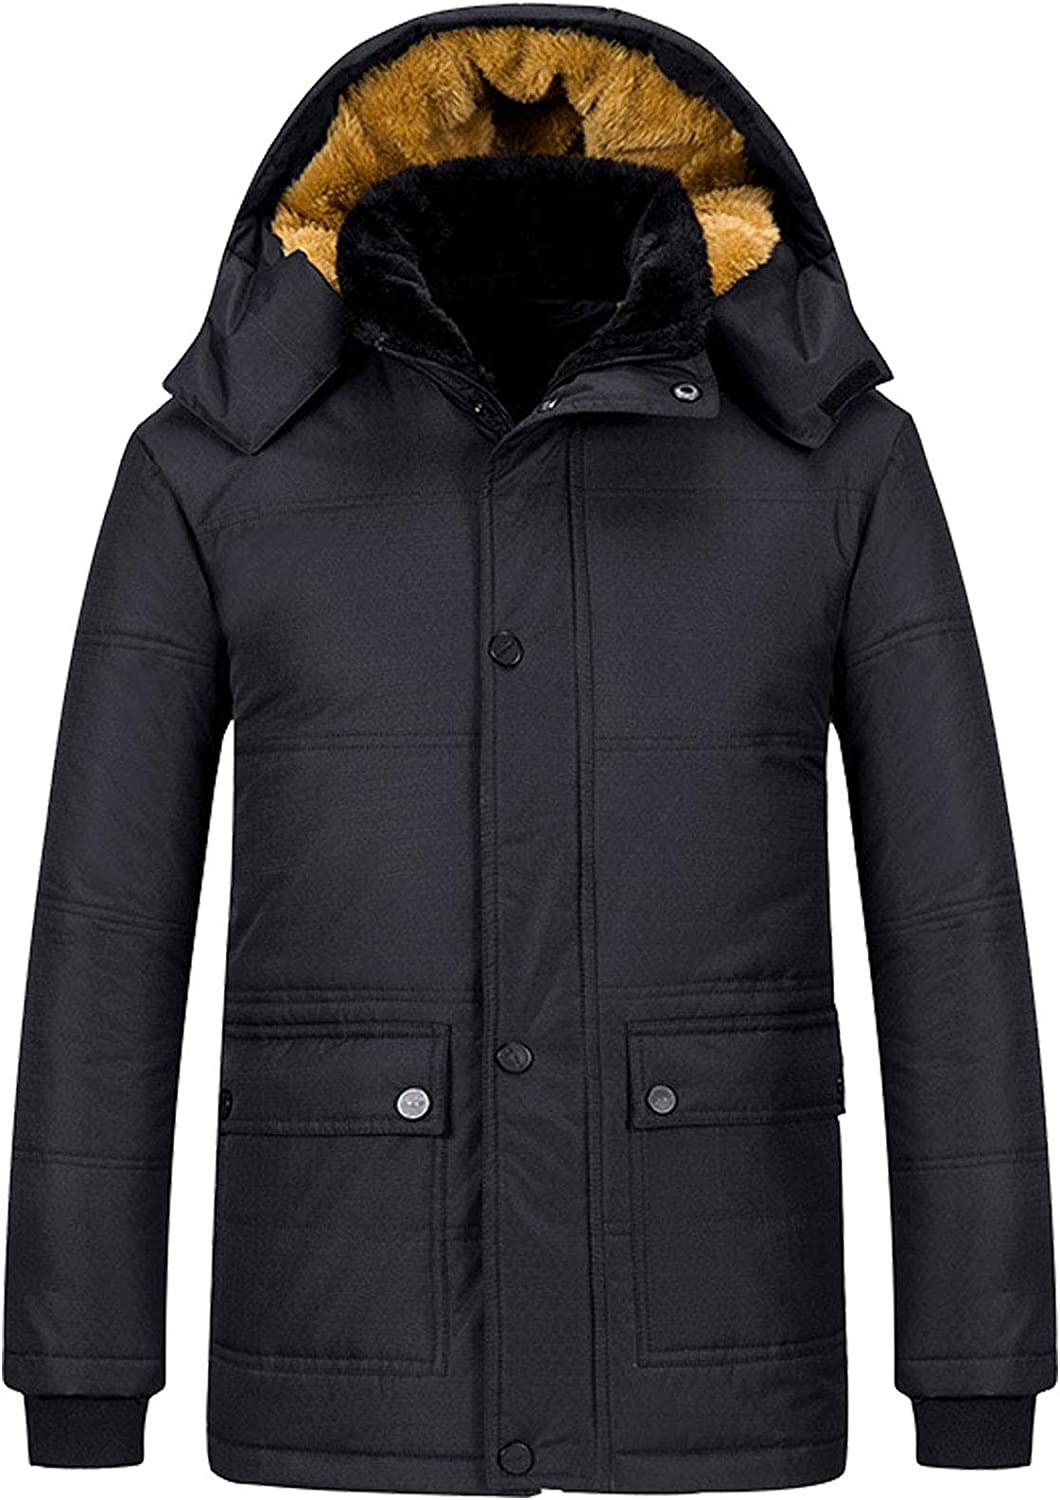 Flygo Men's Thicken Winter Coats Removable Hooded Sherpa Lined Quilted Jacket Outwear